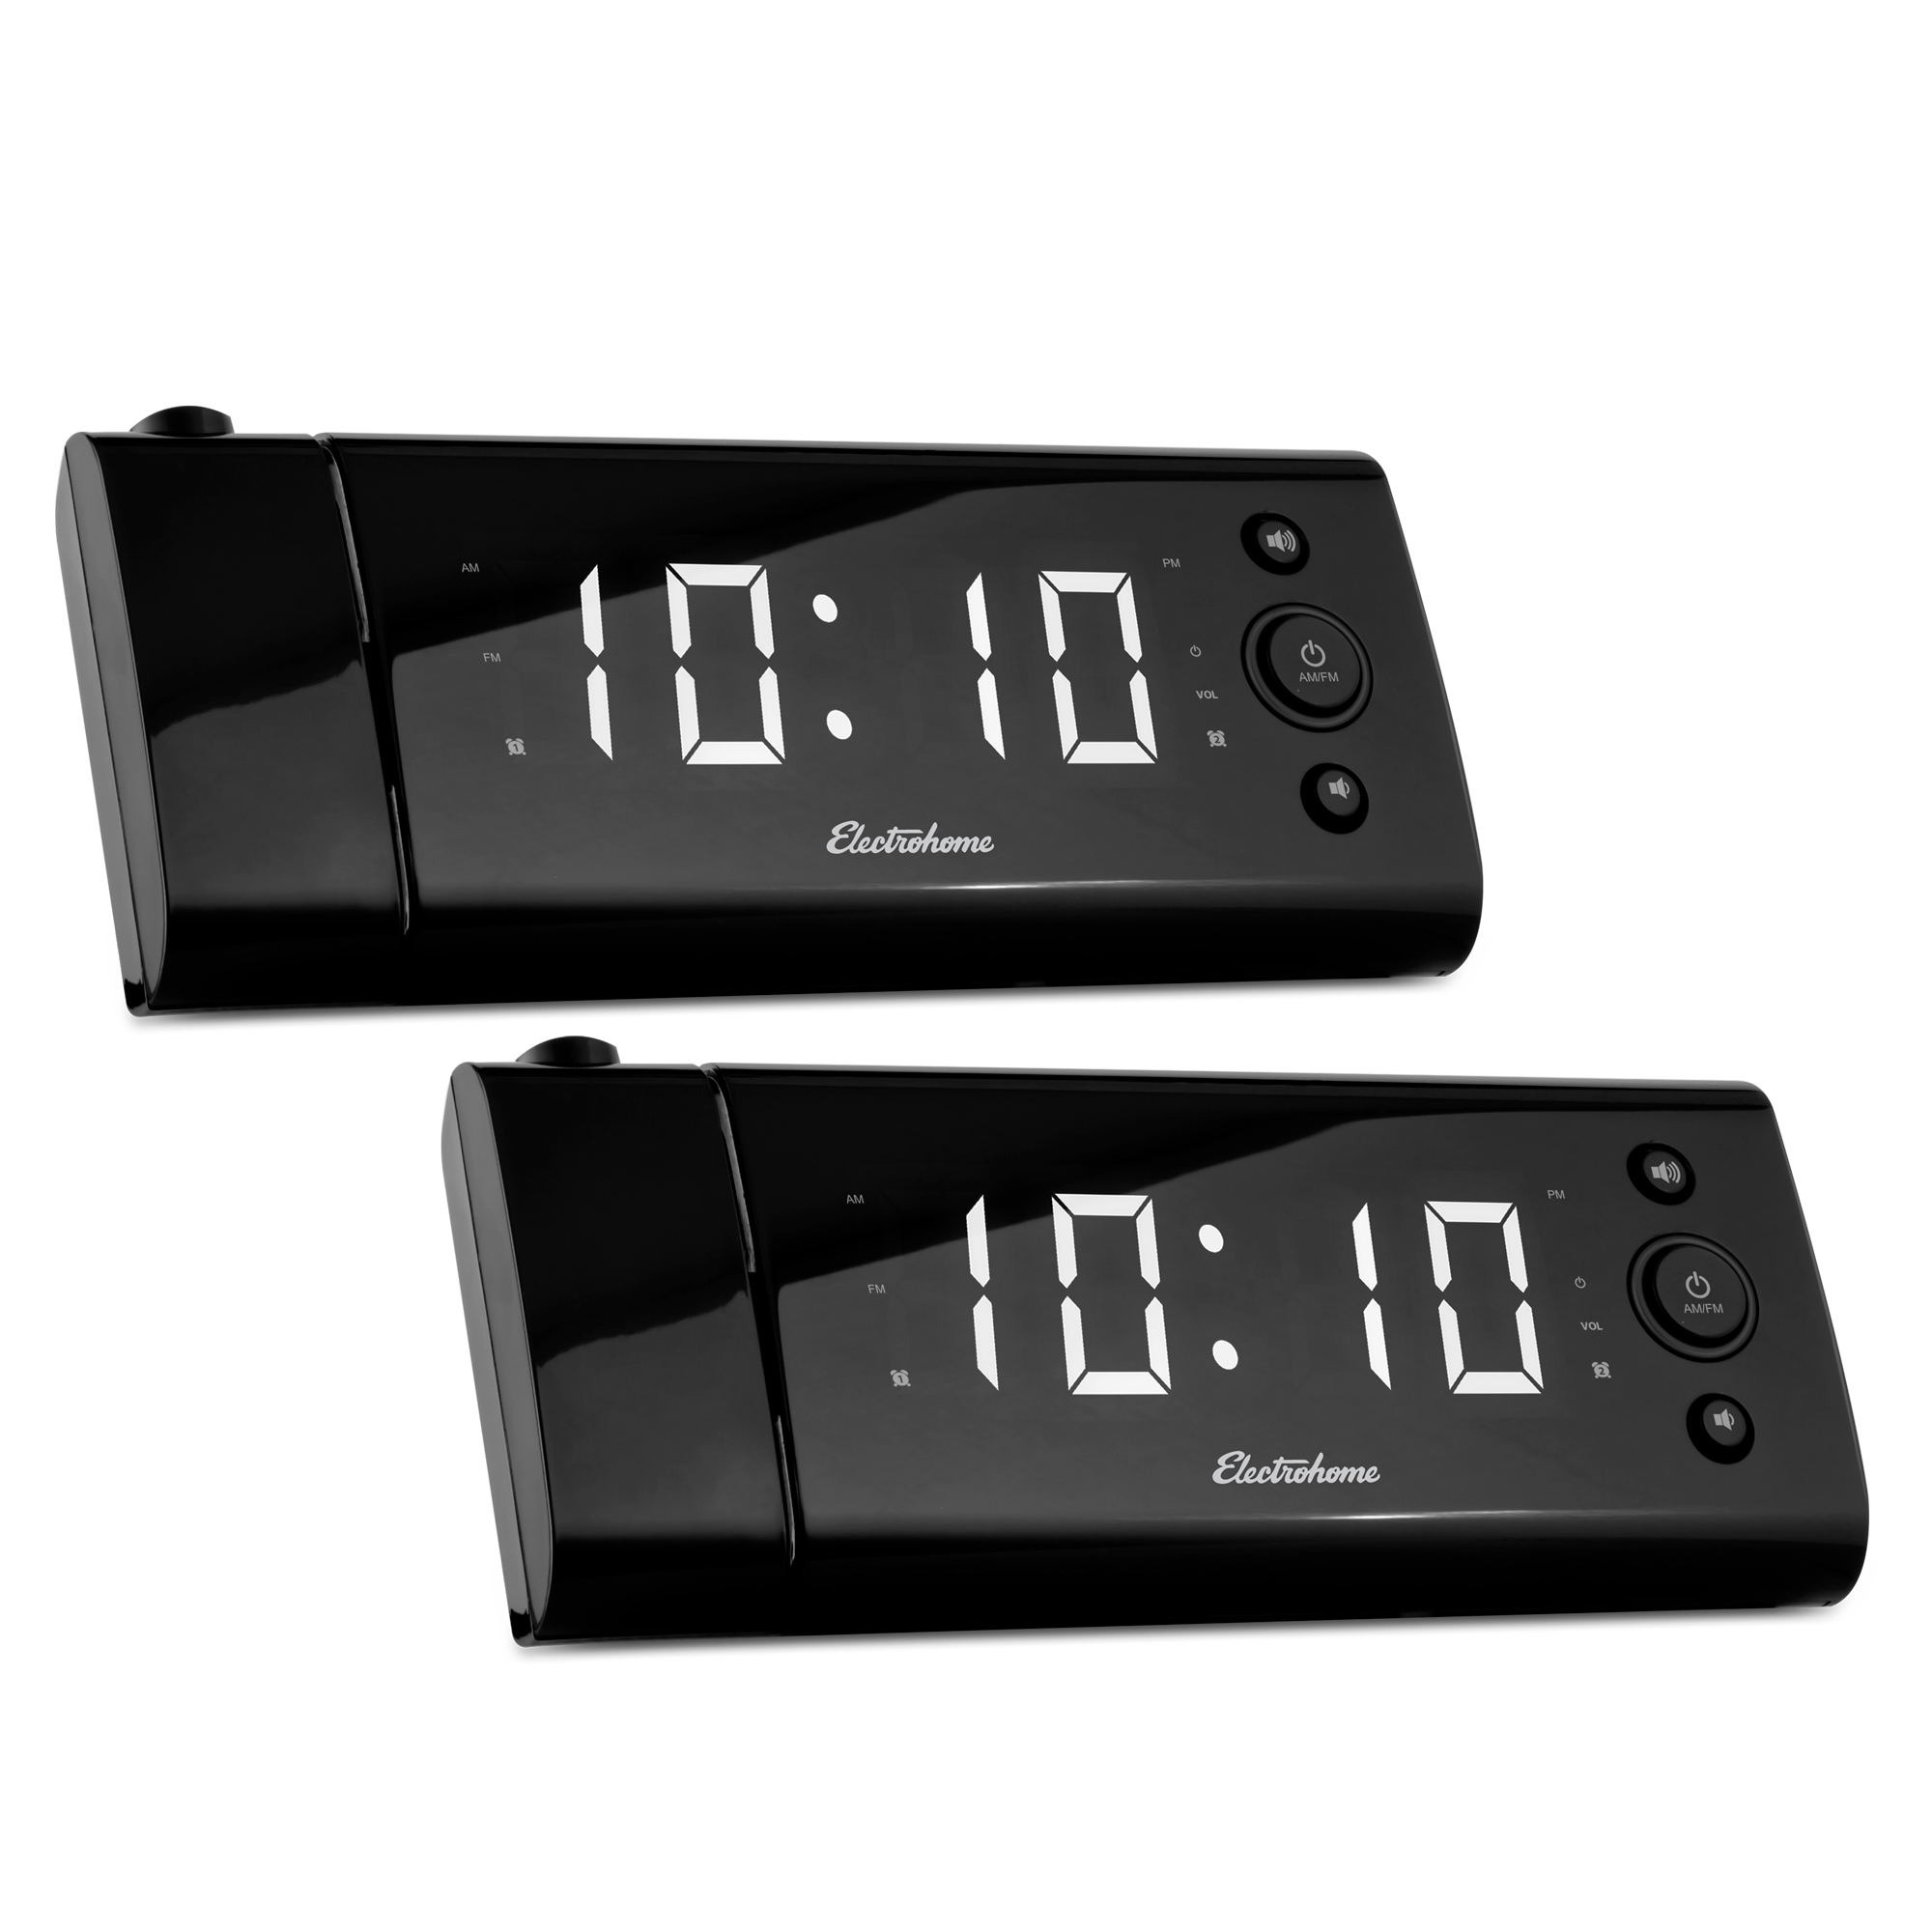 """Electrohome USB Charging Alarm Clock Radio with Time Projection, Battery Backup, Auto Time Set, Dual Alarm, 1.2"""" LED Display for Smartphones & Tablets - 2 PACK"""